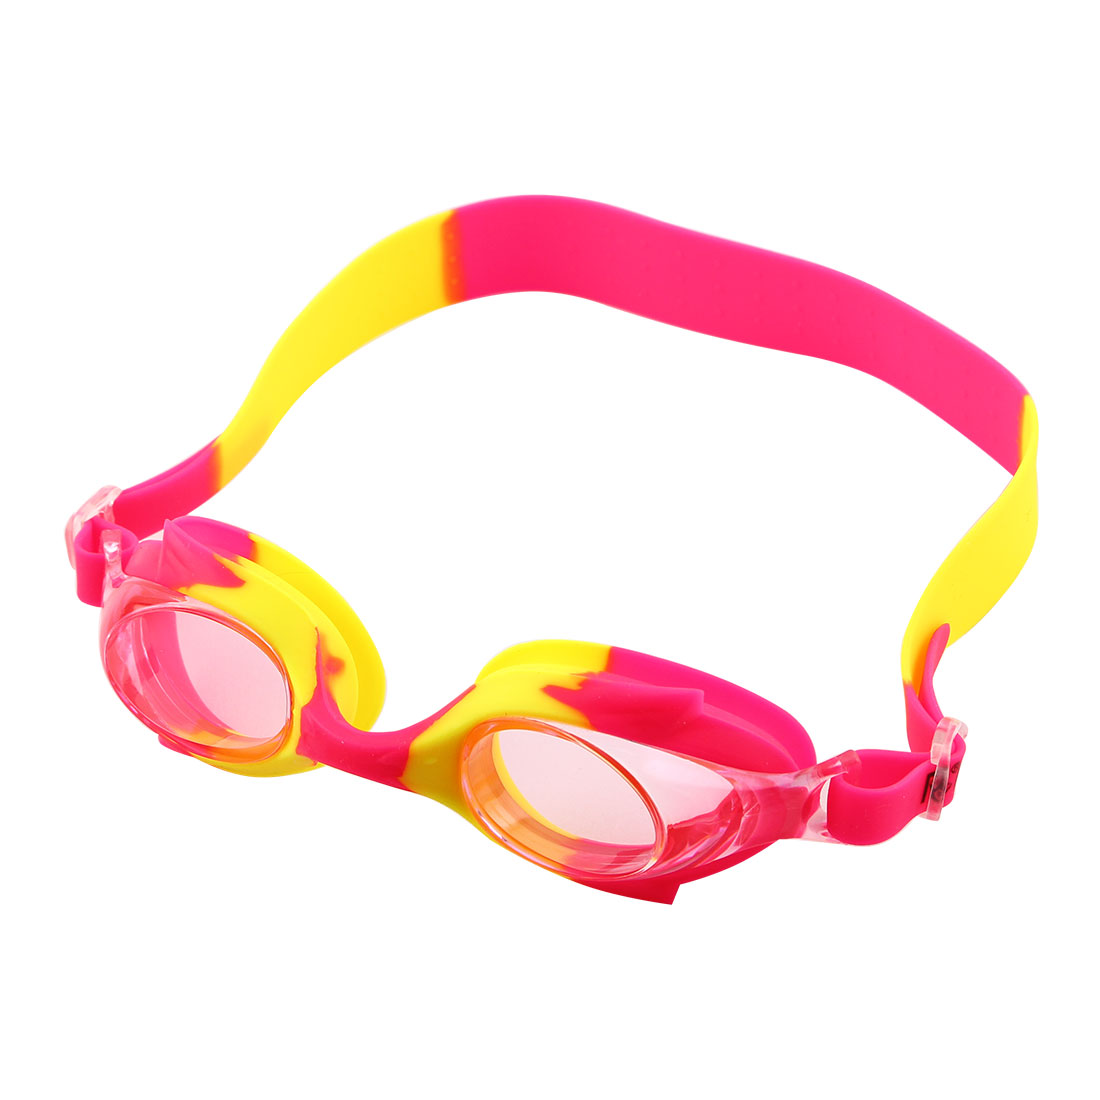 Silicone Adjustable Belt Clear Vision Anti Fog Swim Glasses Swimming Goggles Pink Yellow w Storage Case for Youth Boys Girls